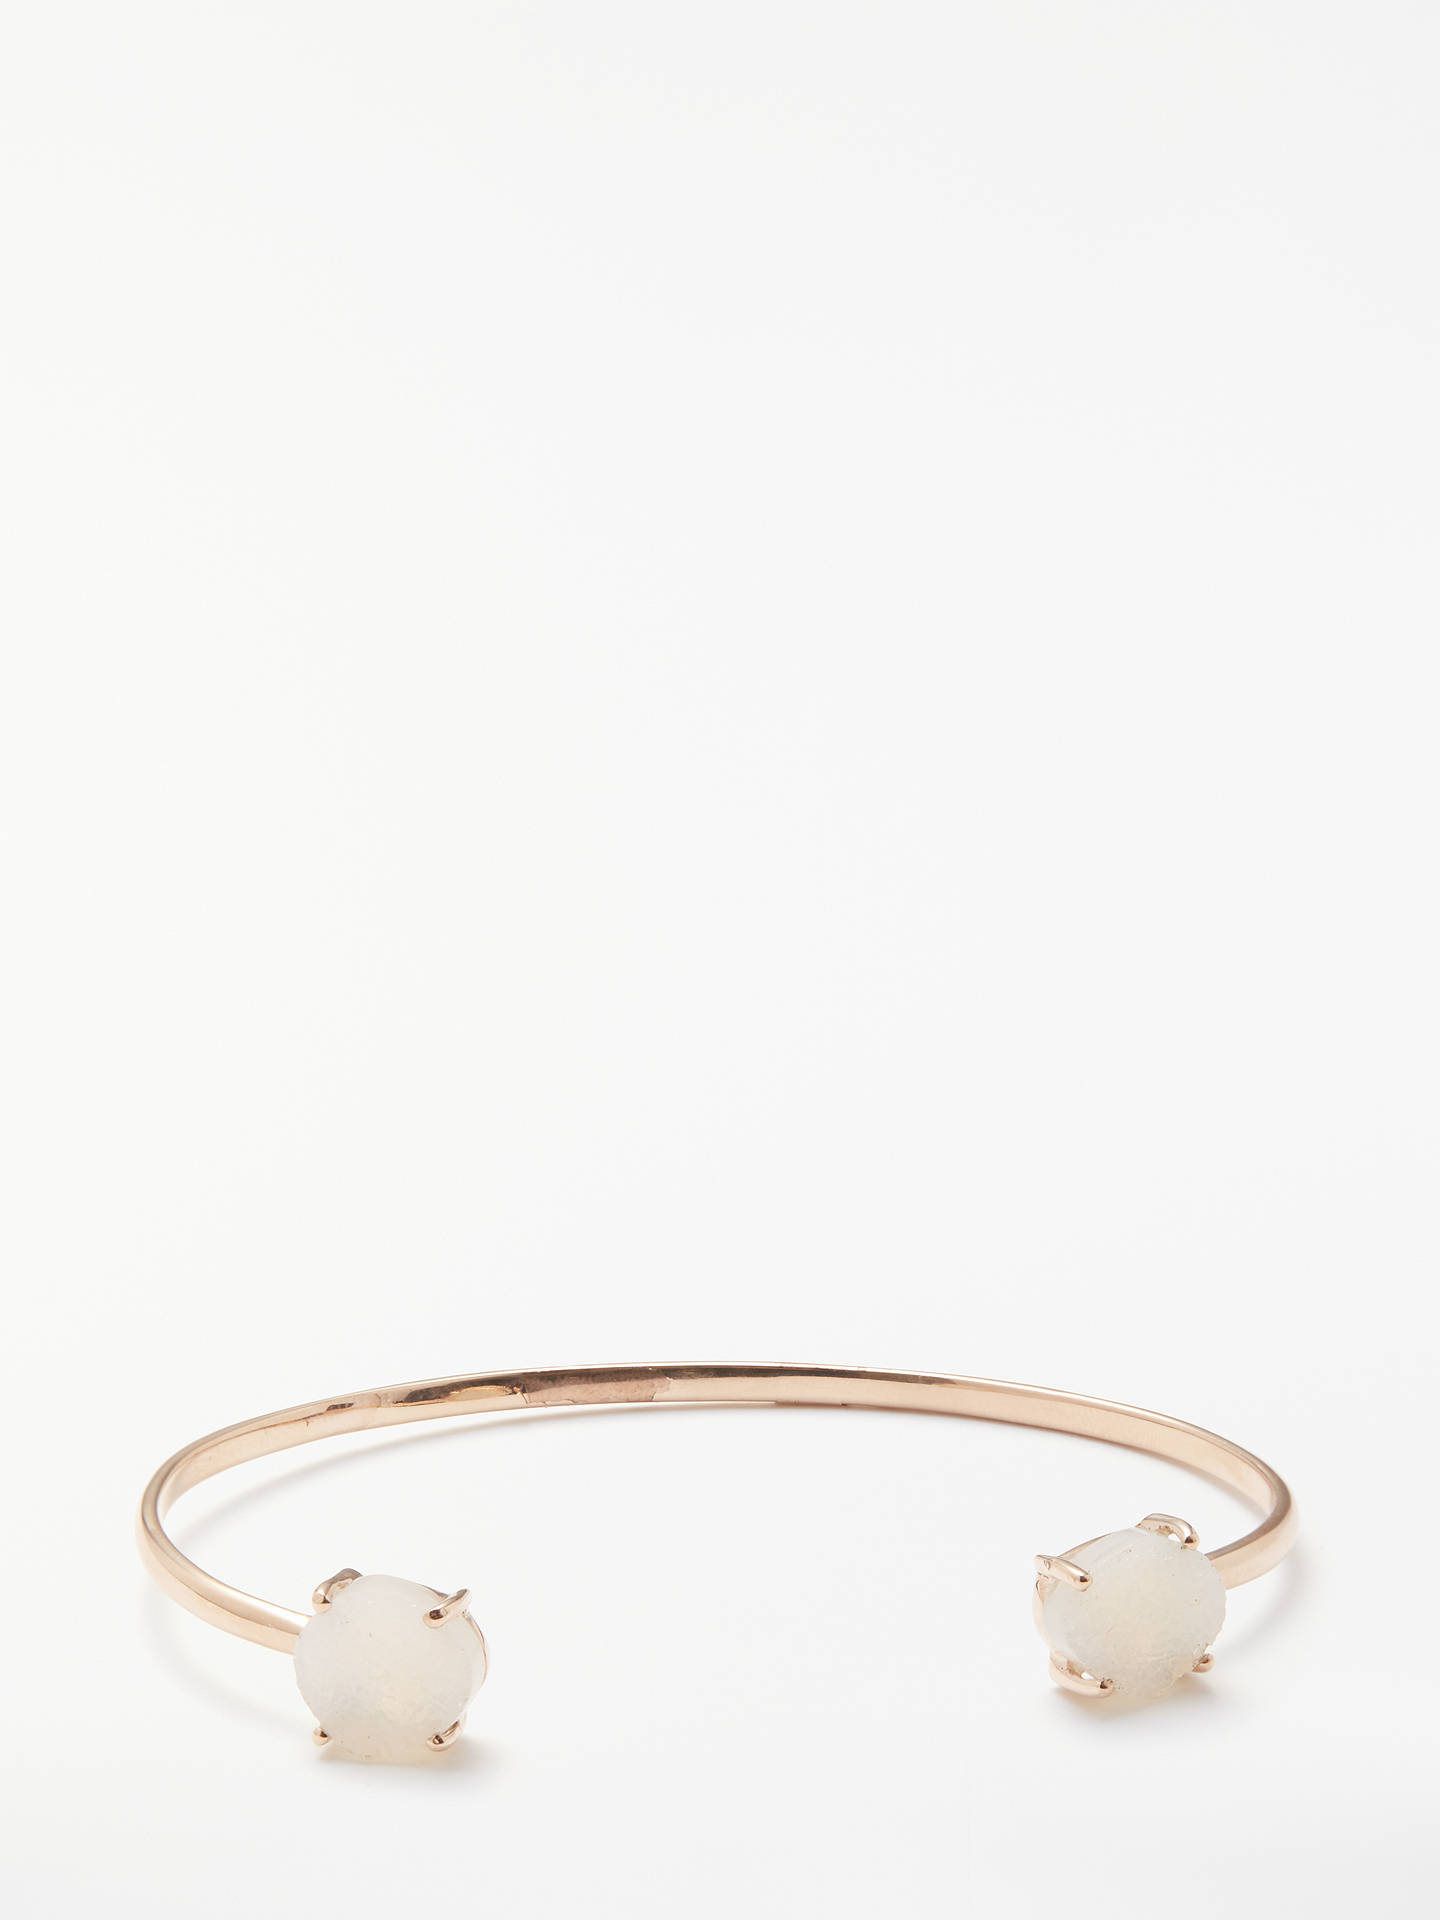 BuyJohn Lewis Gemstones Open Bangle, Rose Gold/Drusy Online at johnlewis.com